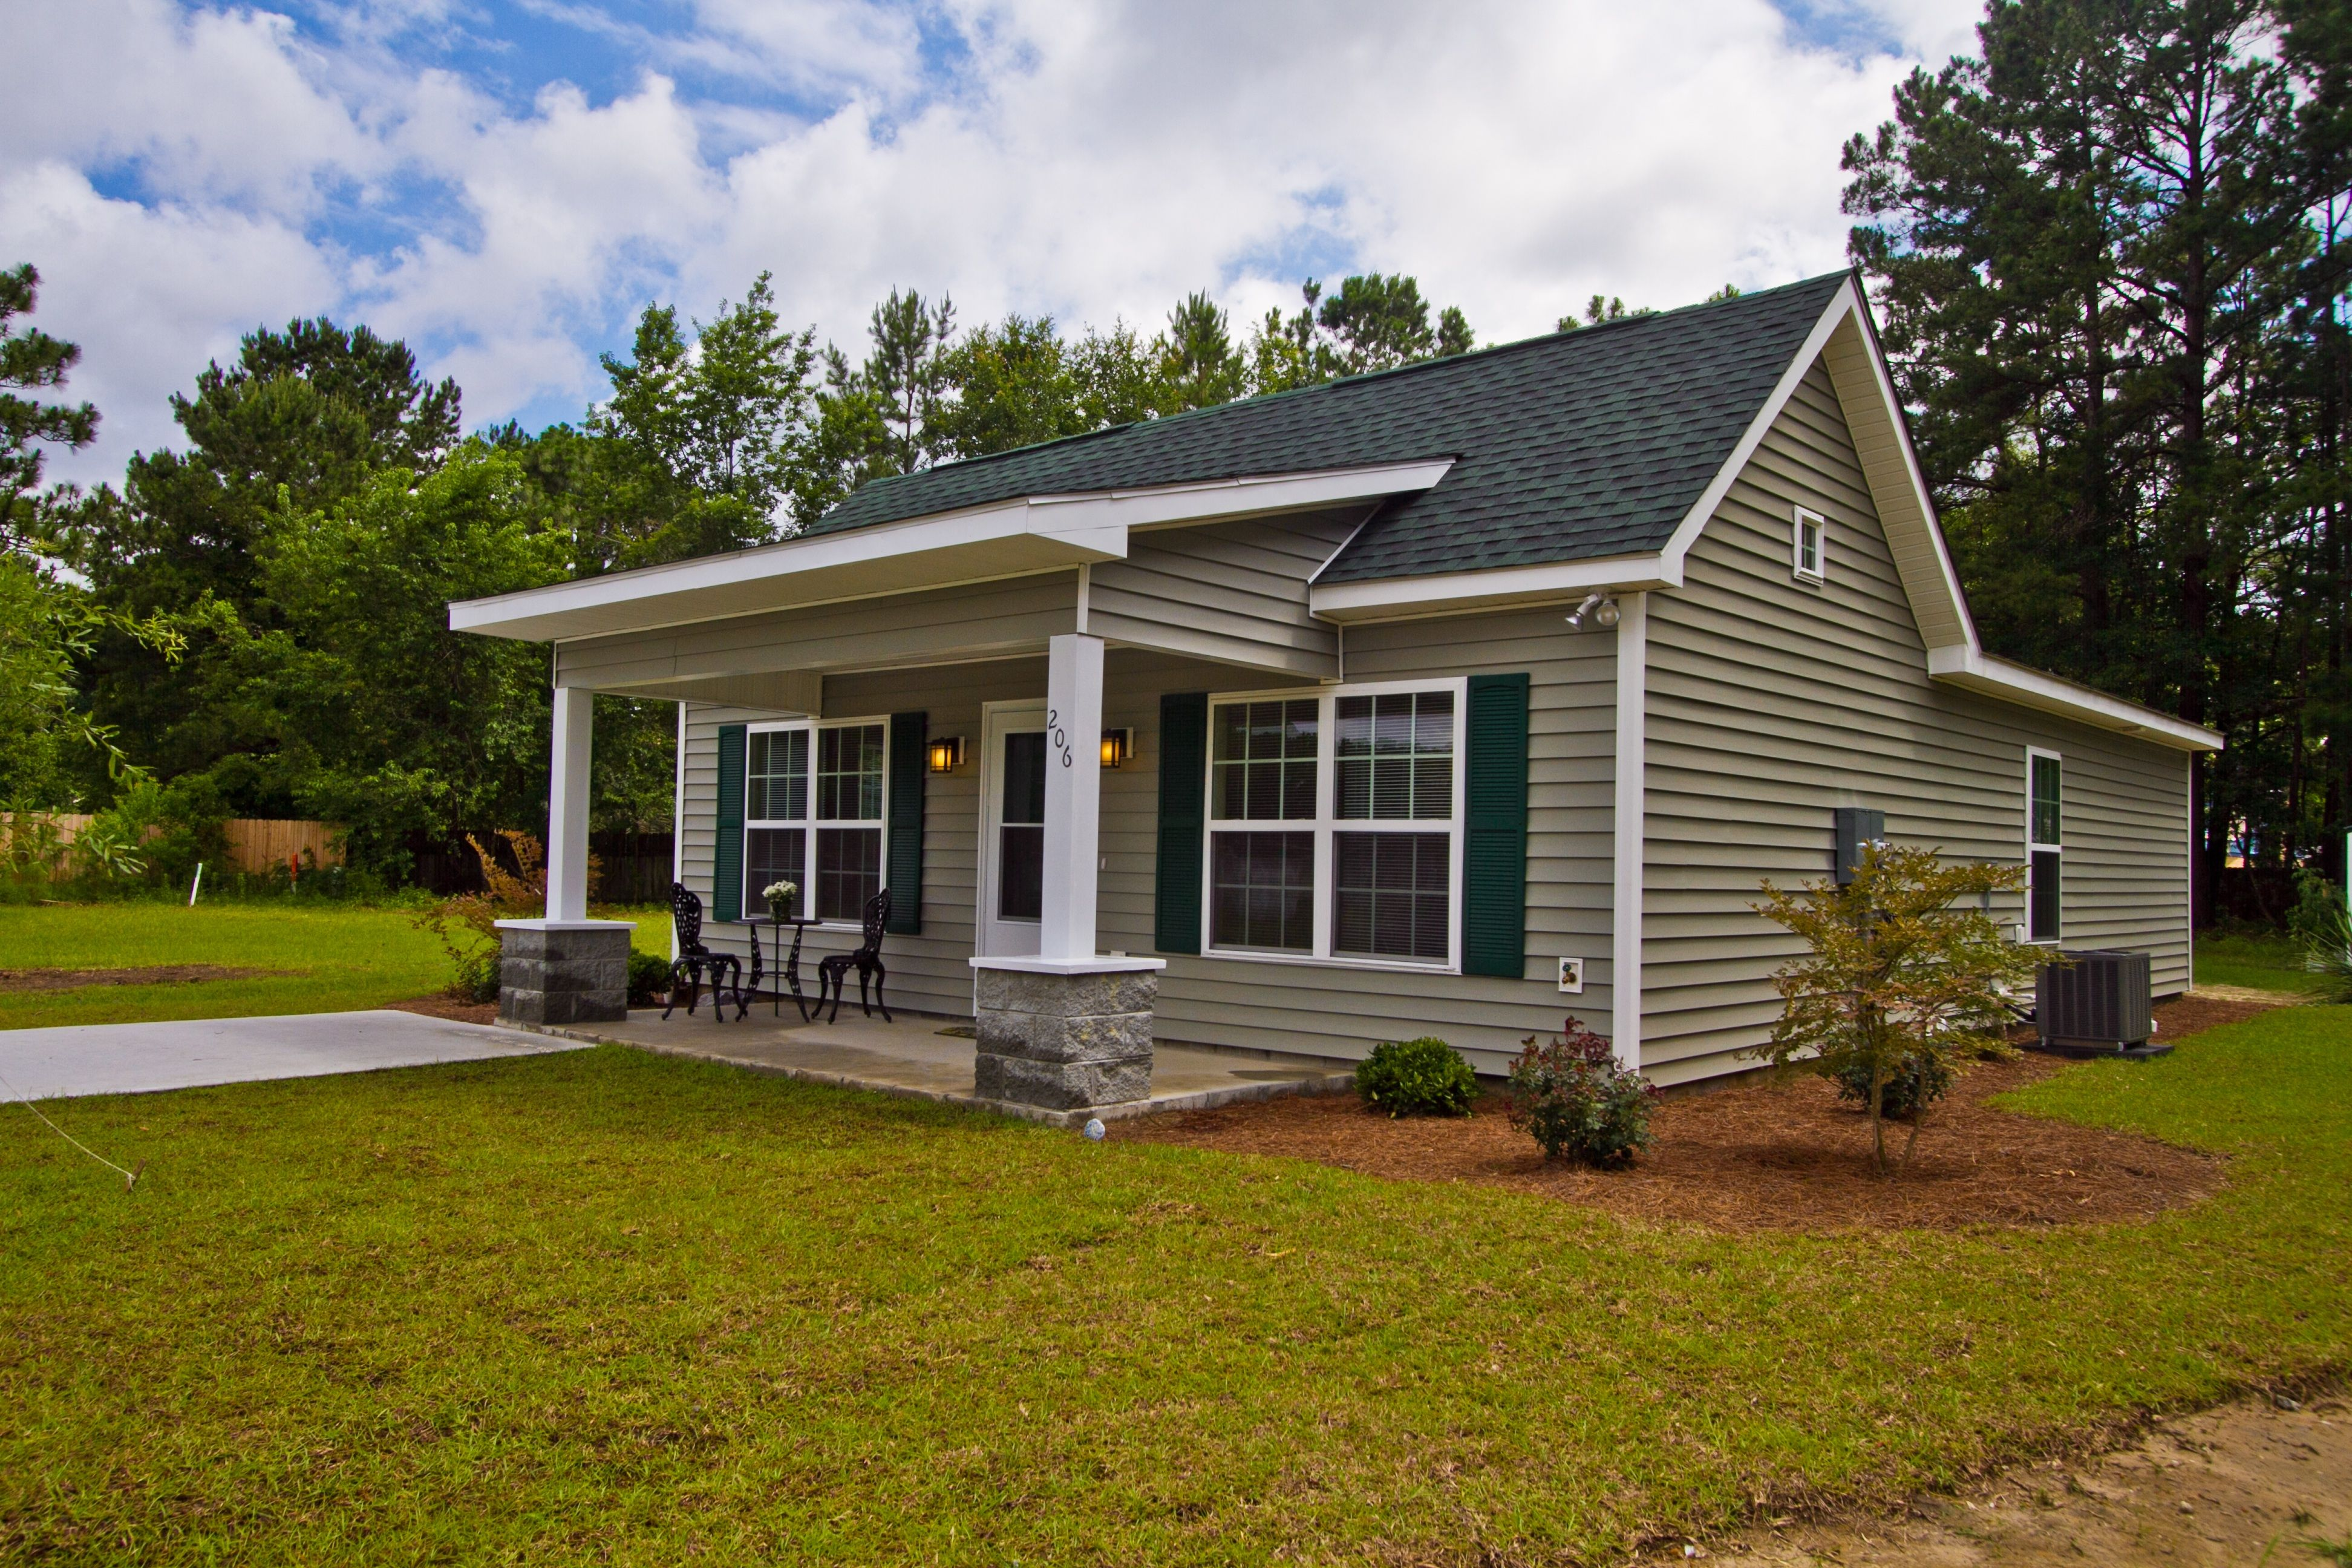 11 dream low country cottage photo architecture plans for What is low country design